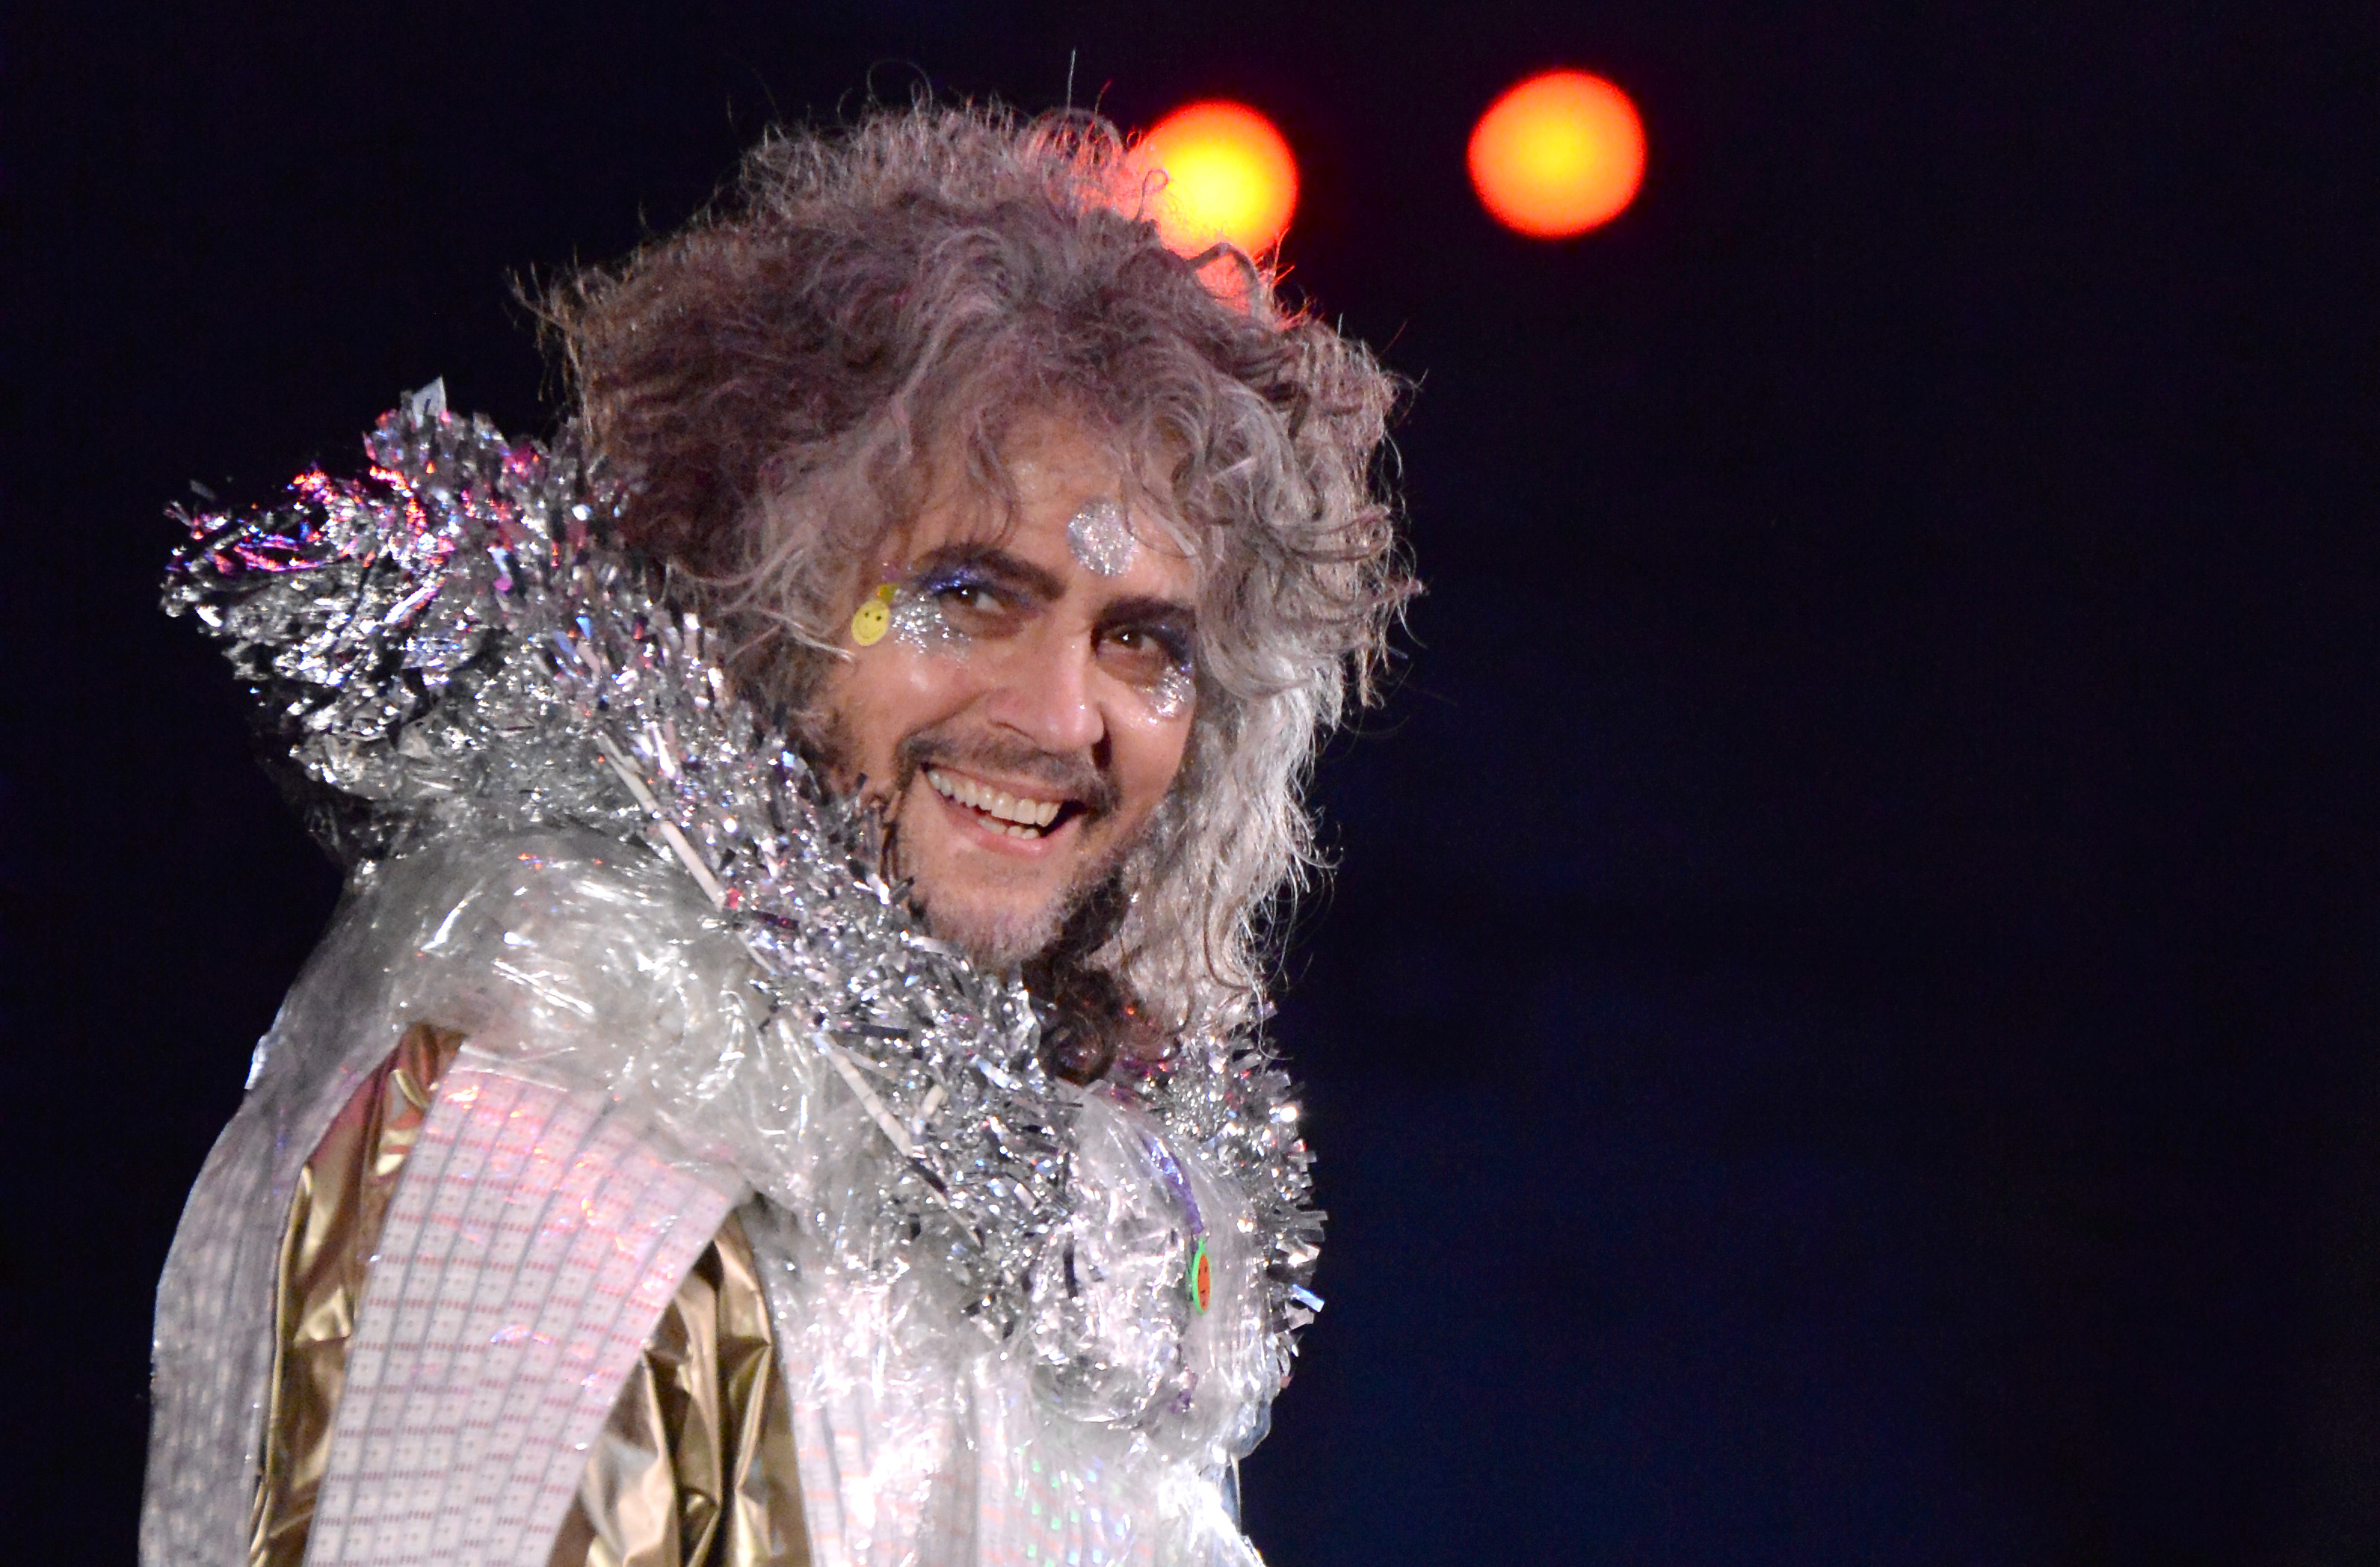 Wayne Coyne performs  life On Mars  onstage at Michael Dorf Presents - The Music of David Bowie at Radio City Music Hall on April 1, 2016 in New York City.